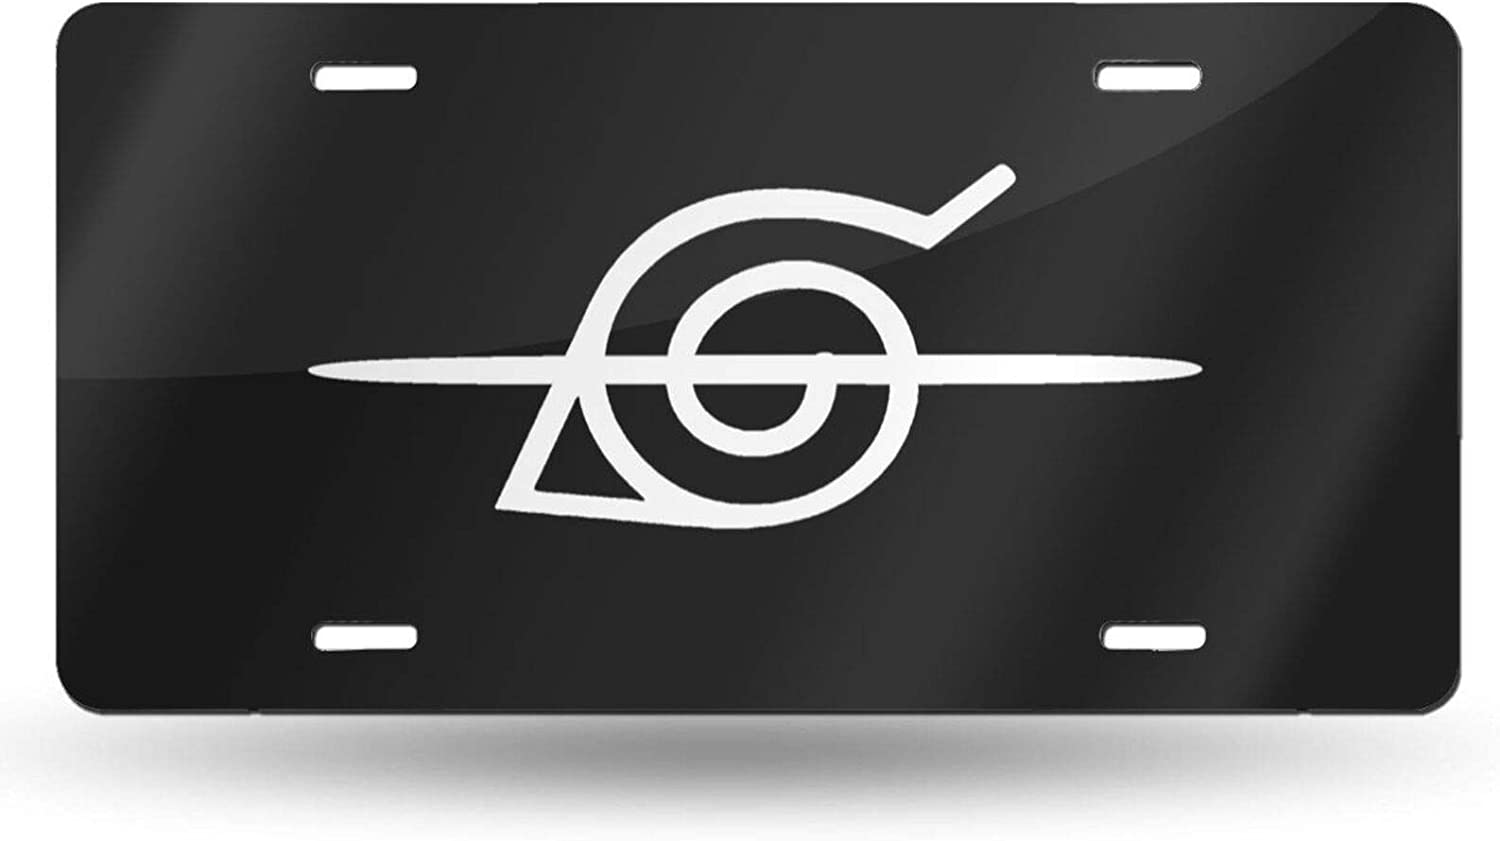 Rogue Ninja Logo License Plate for Cars 12x6 Personalized Aluminum Novelty Cool Decorative Car Vanity Tags